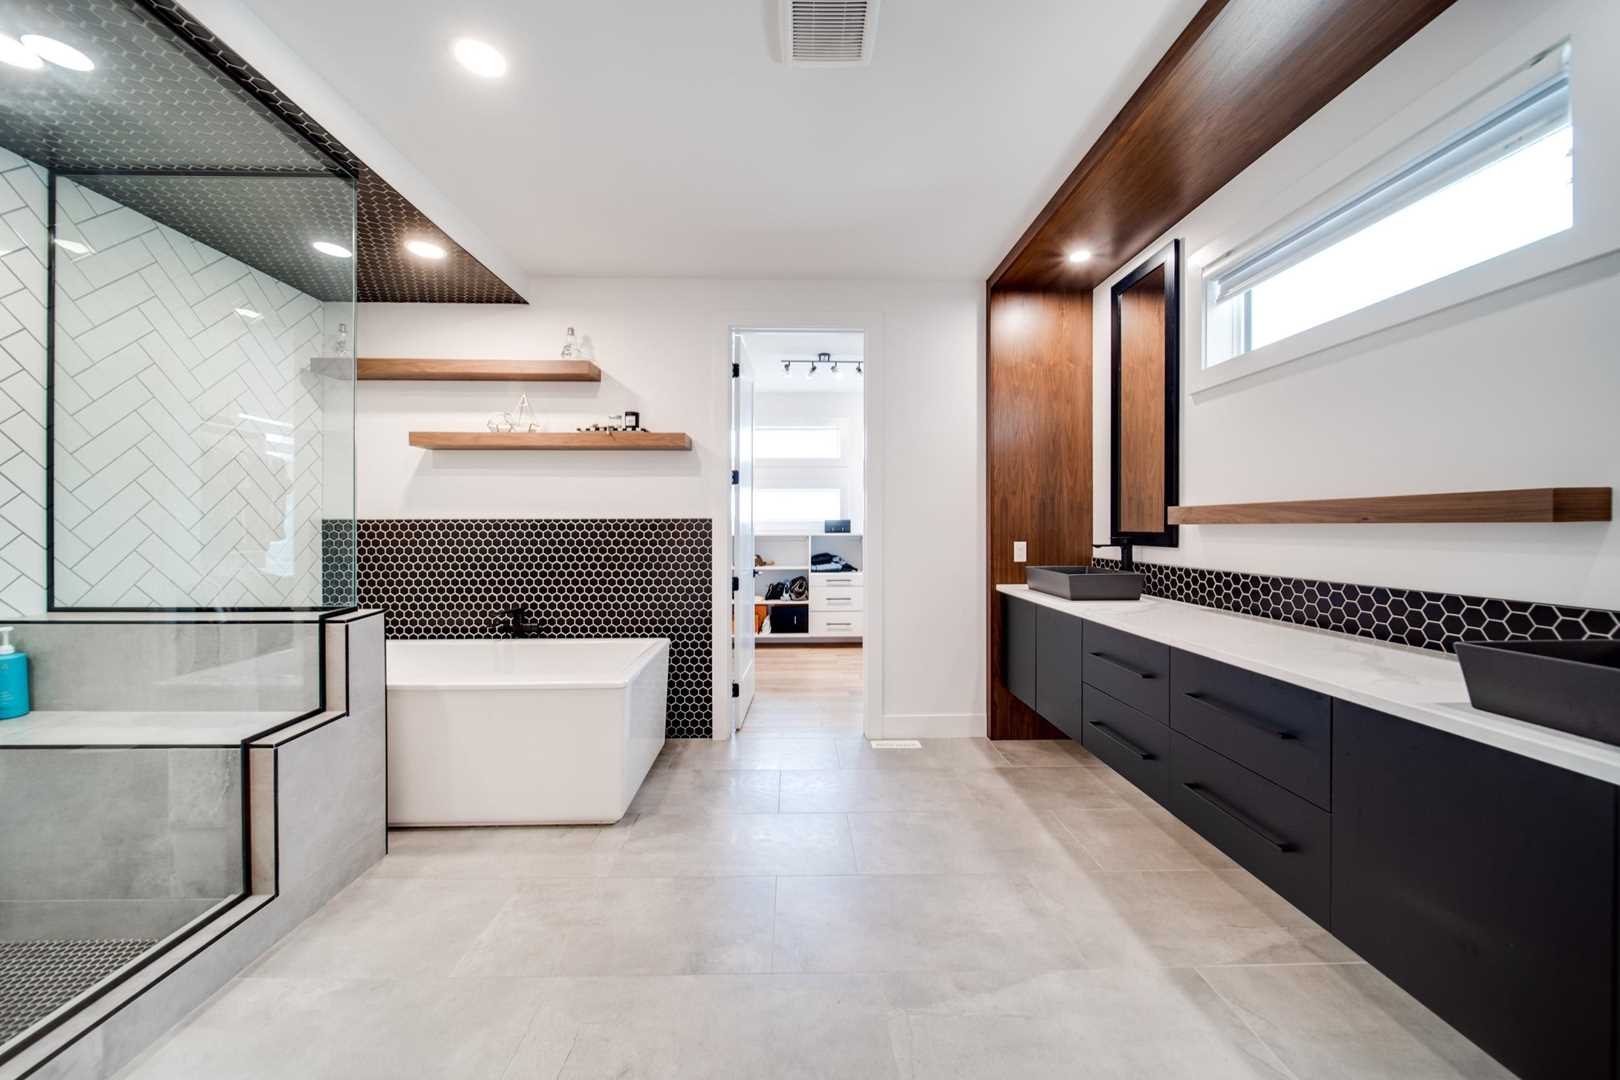 En suite bathroom, white ceiling and walls, light hardwood floor; large mirror over white counter and black cupboards on right; shower and soaker tub on left